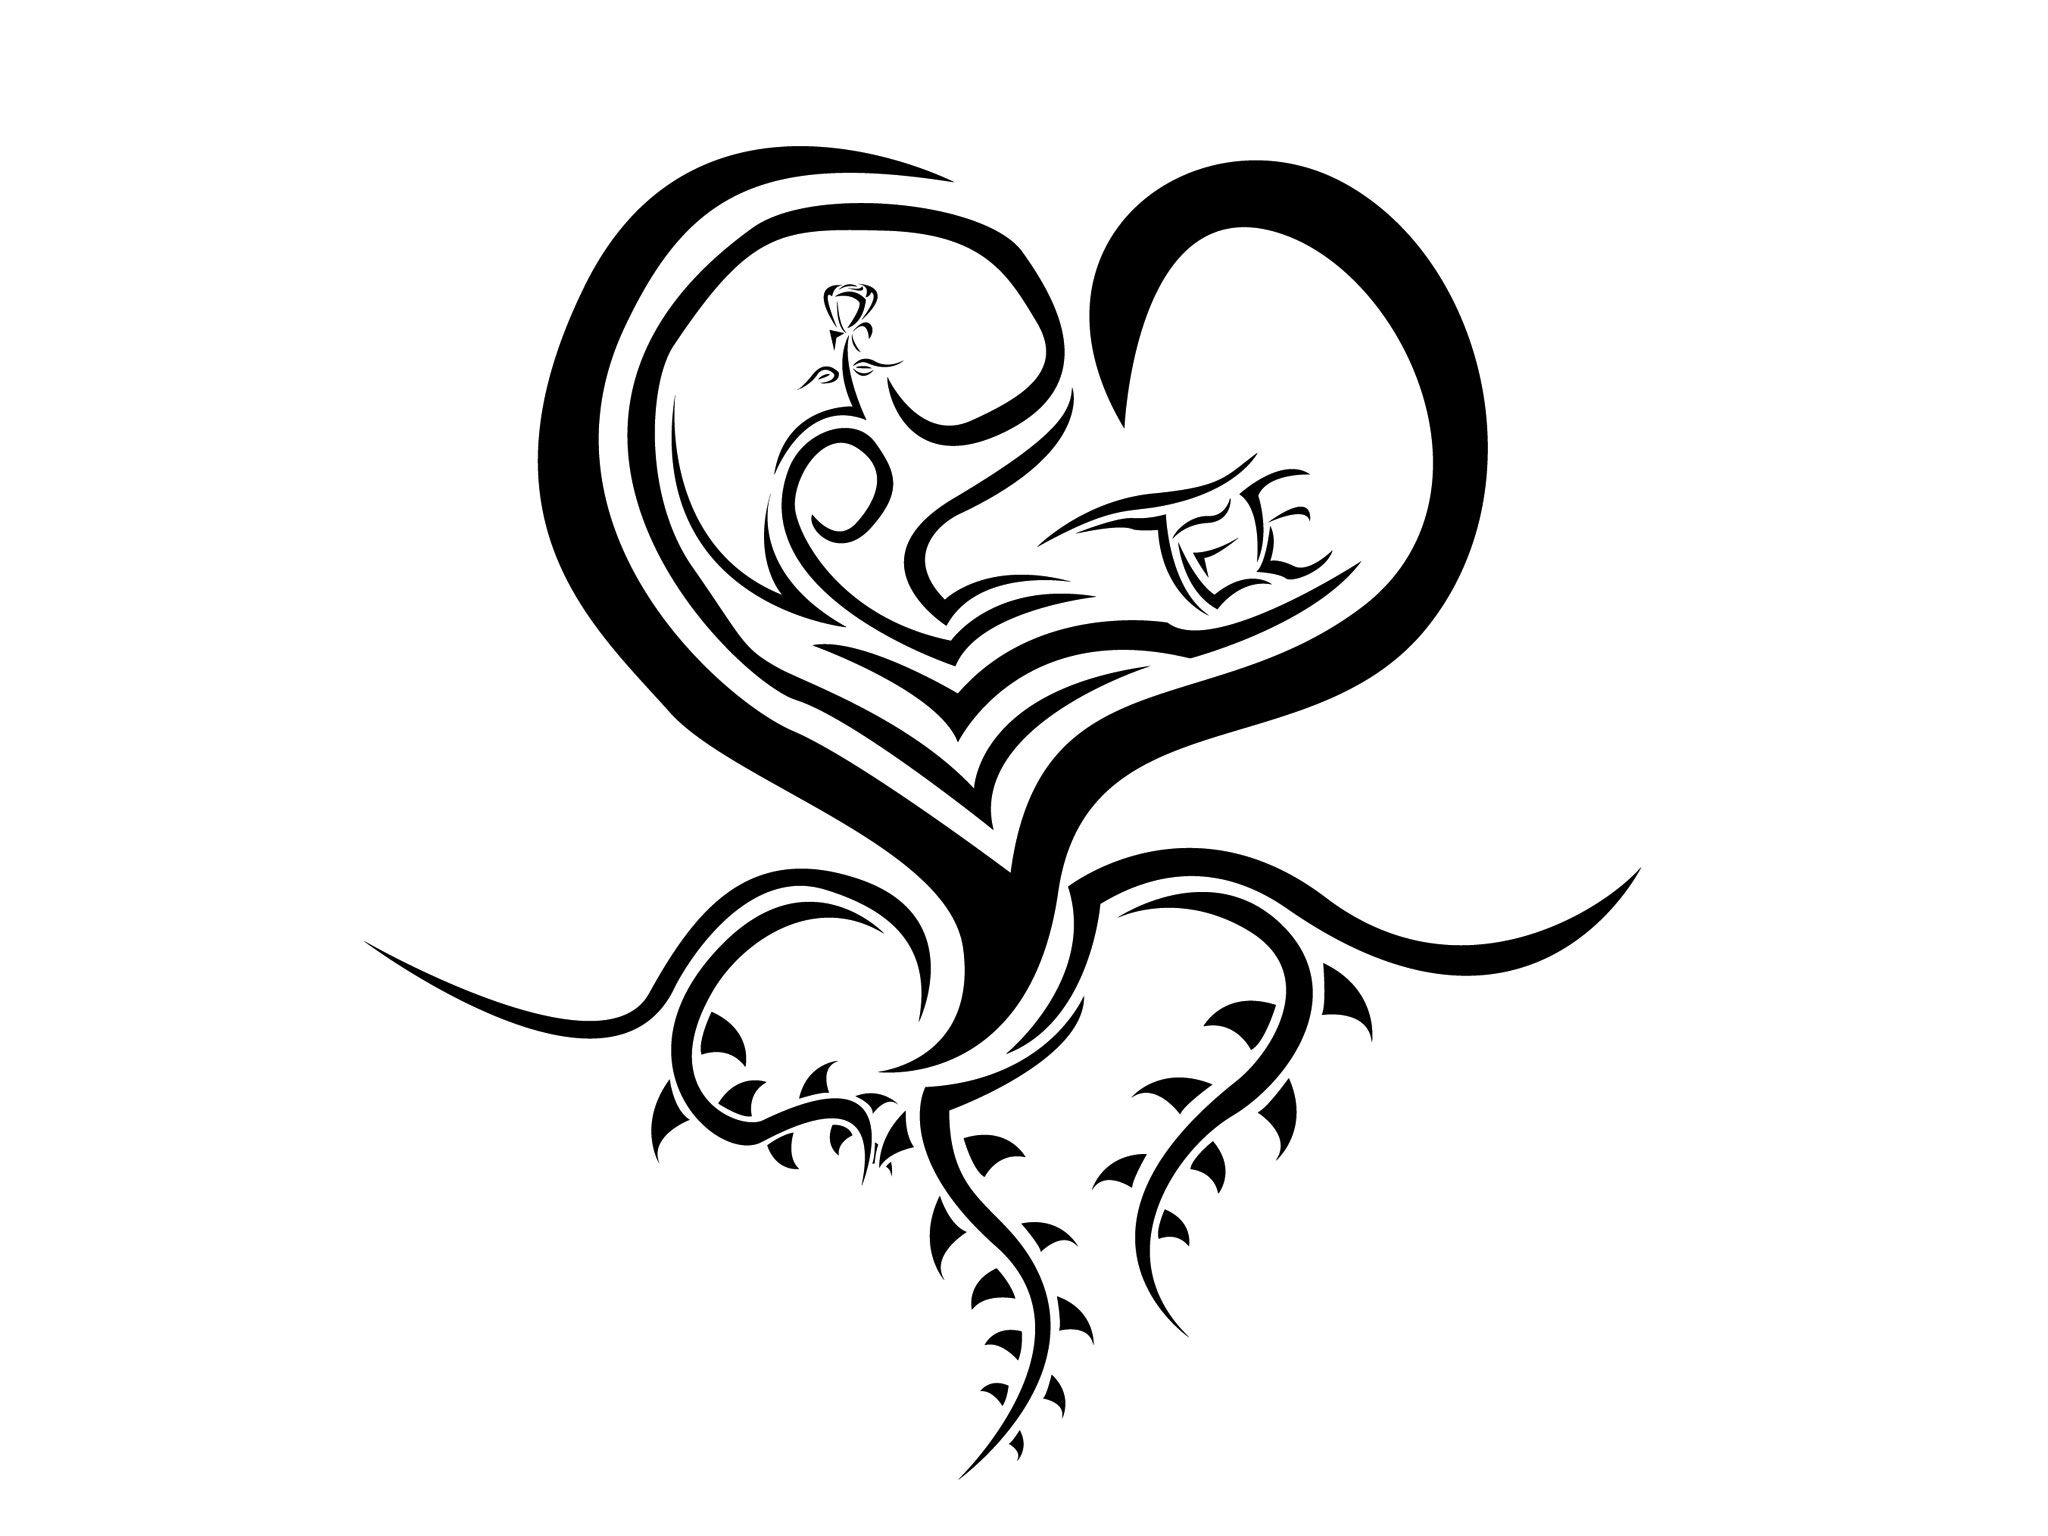 Curved Heart Tattoo Wallpaper 2048x1536 Px Free Download Heart Tattoo Tattoos Arrow Tattoo Tattoo wallpaper photos download